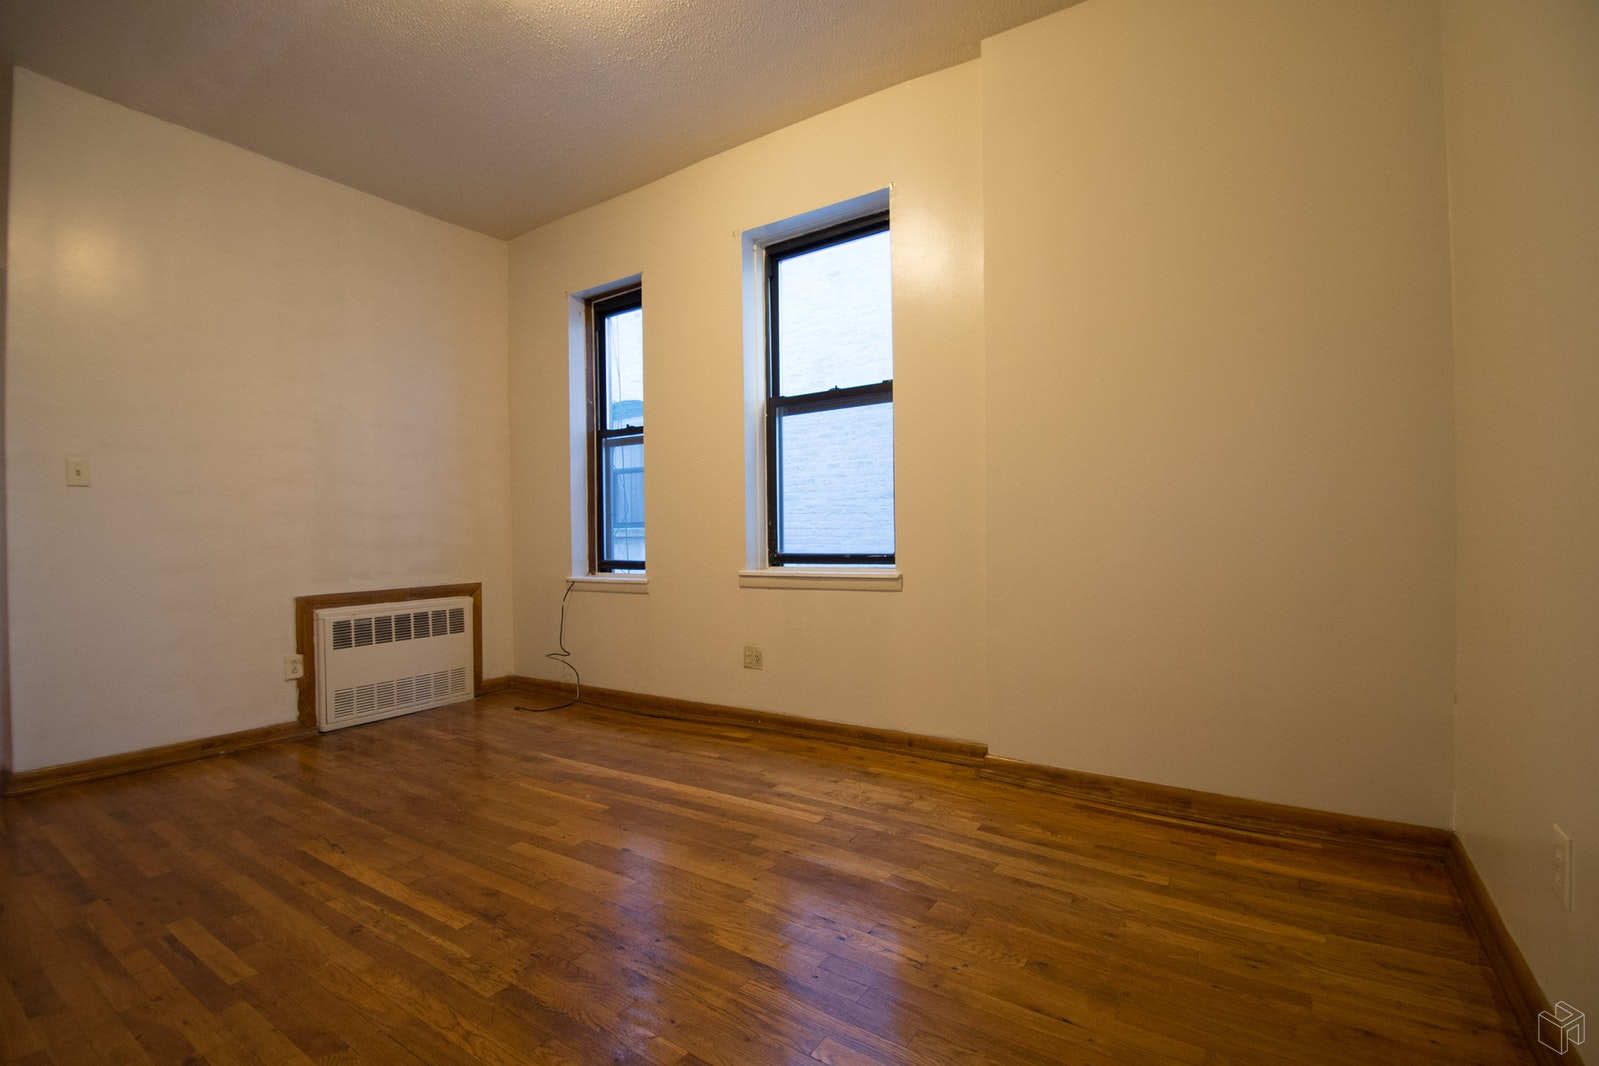 26 West 131st Street, Upper Manhattan, NYC, 10037, $1,665, Property For Rent, Halstead Real Estate, Photo 2